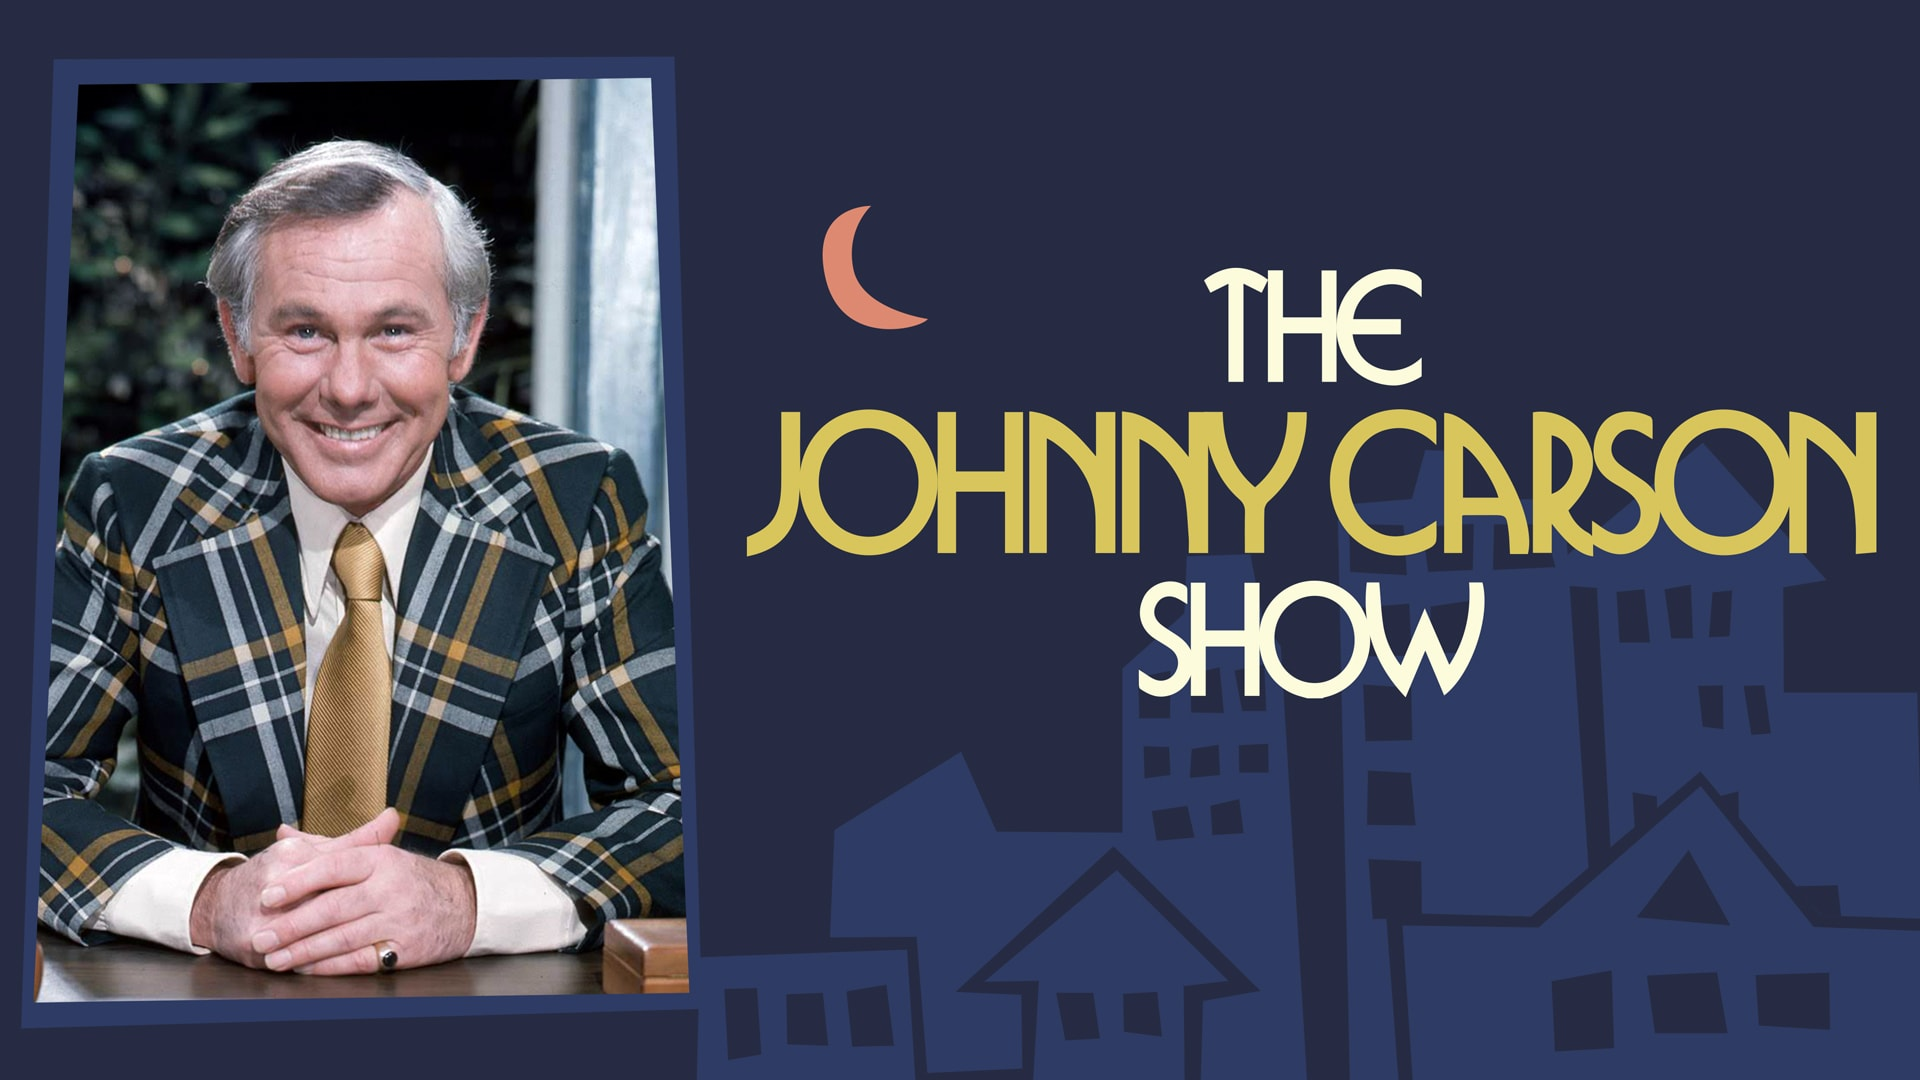 The Johnny Carson Show: Comic Legends Of The '80s - Charles Grodin (12/9/83)